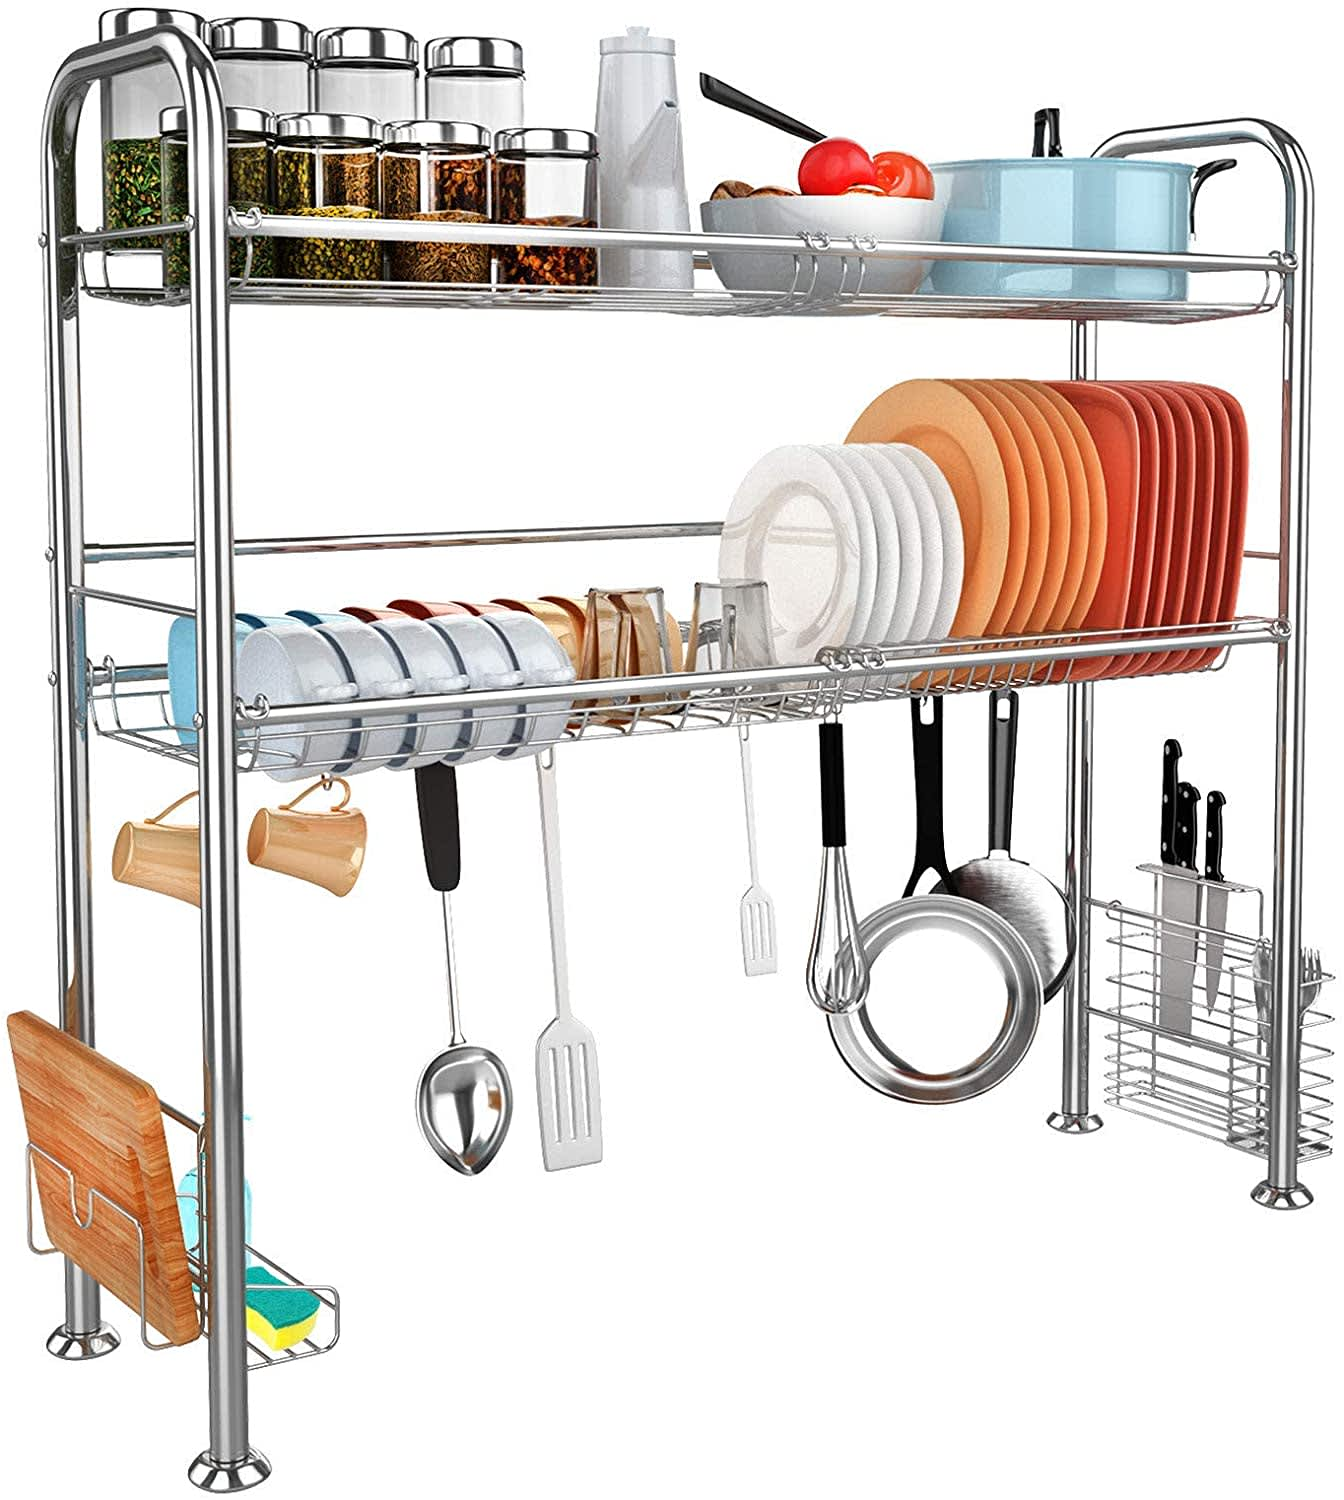 Jzbrain 2-Tier Over The Sink Drying Rack